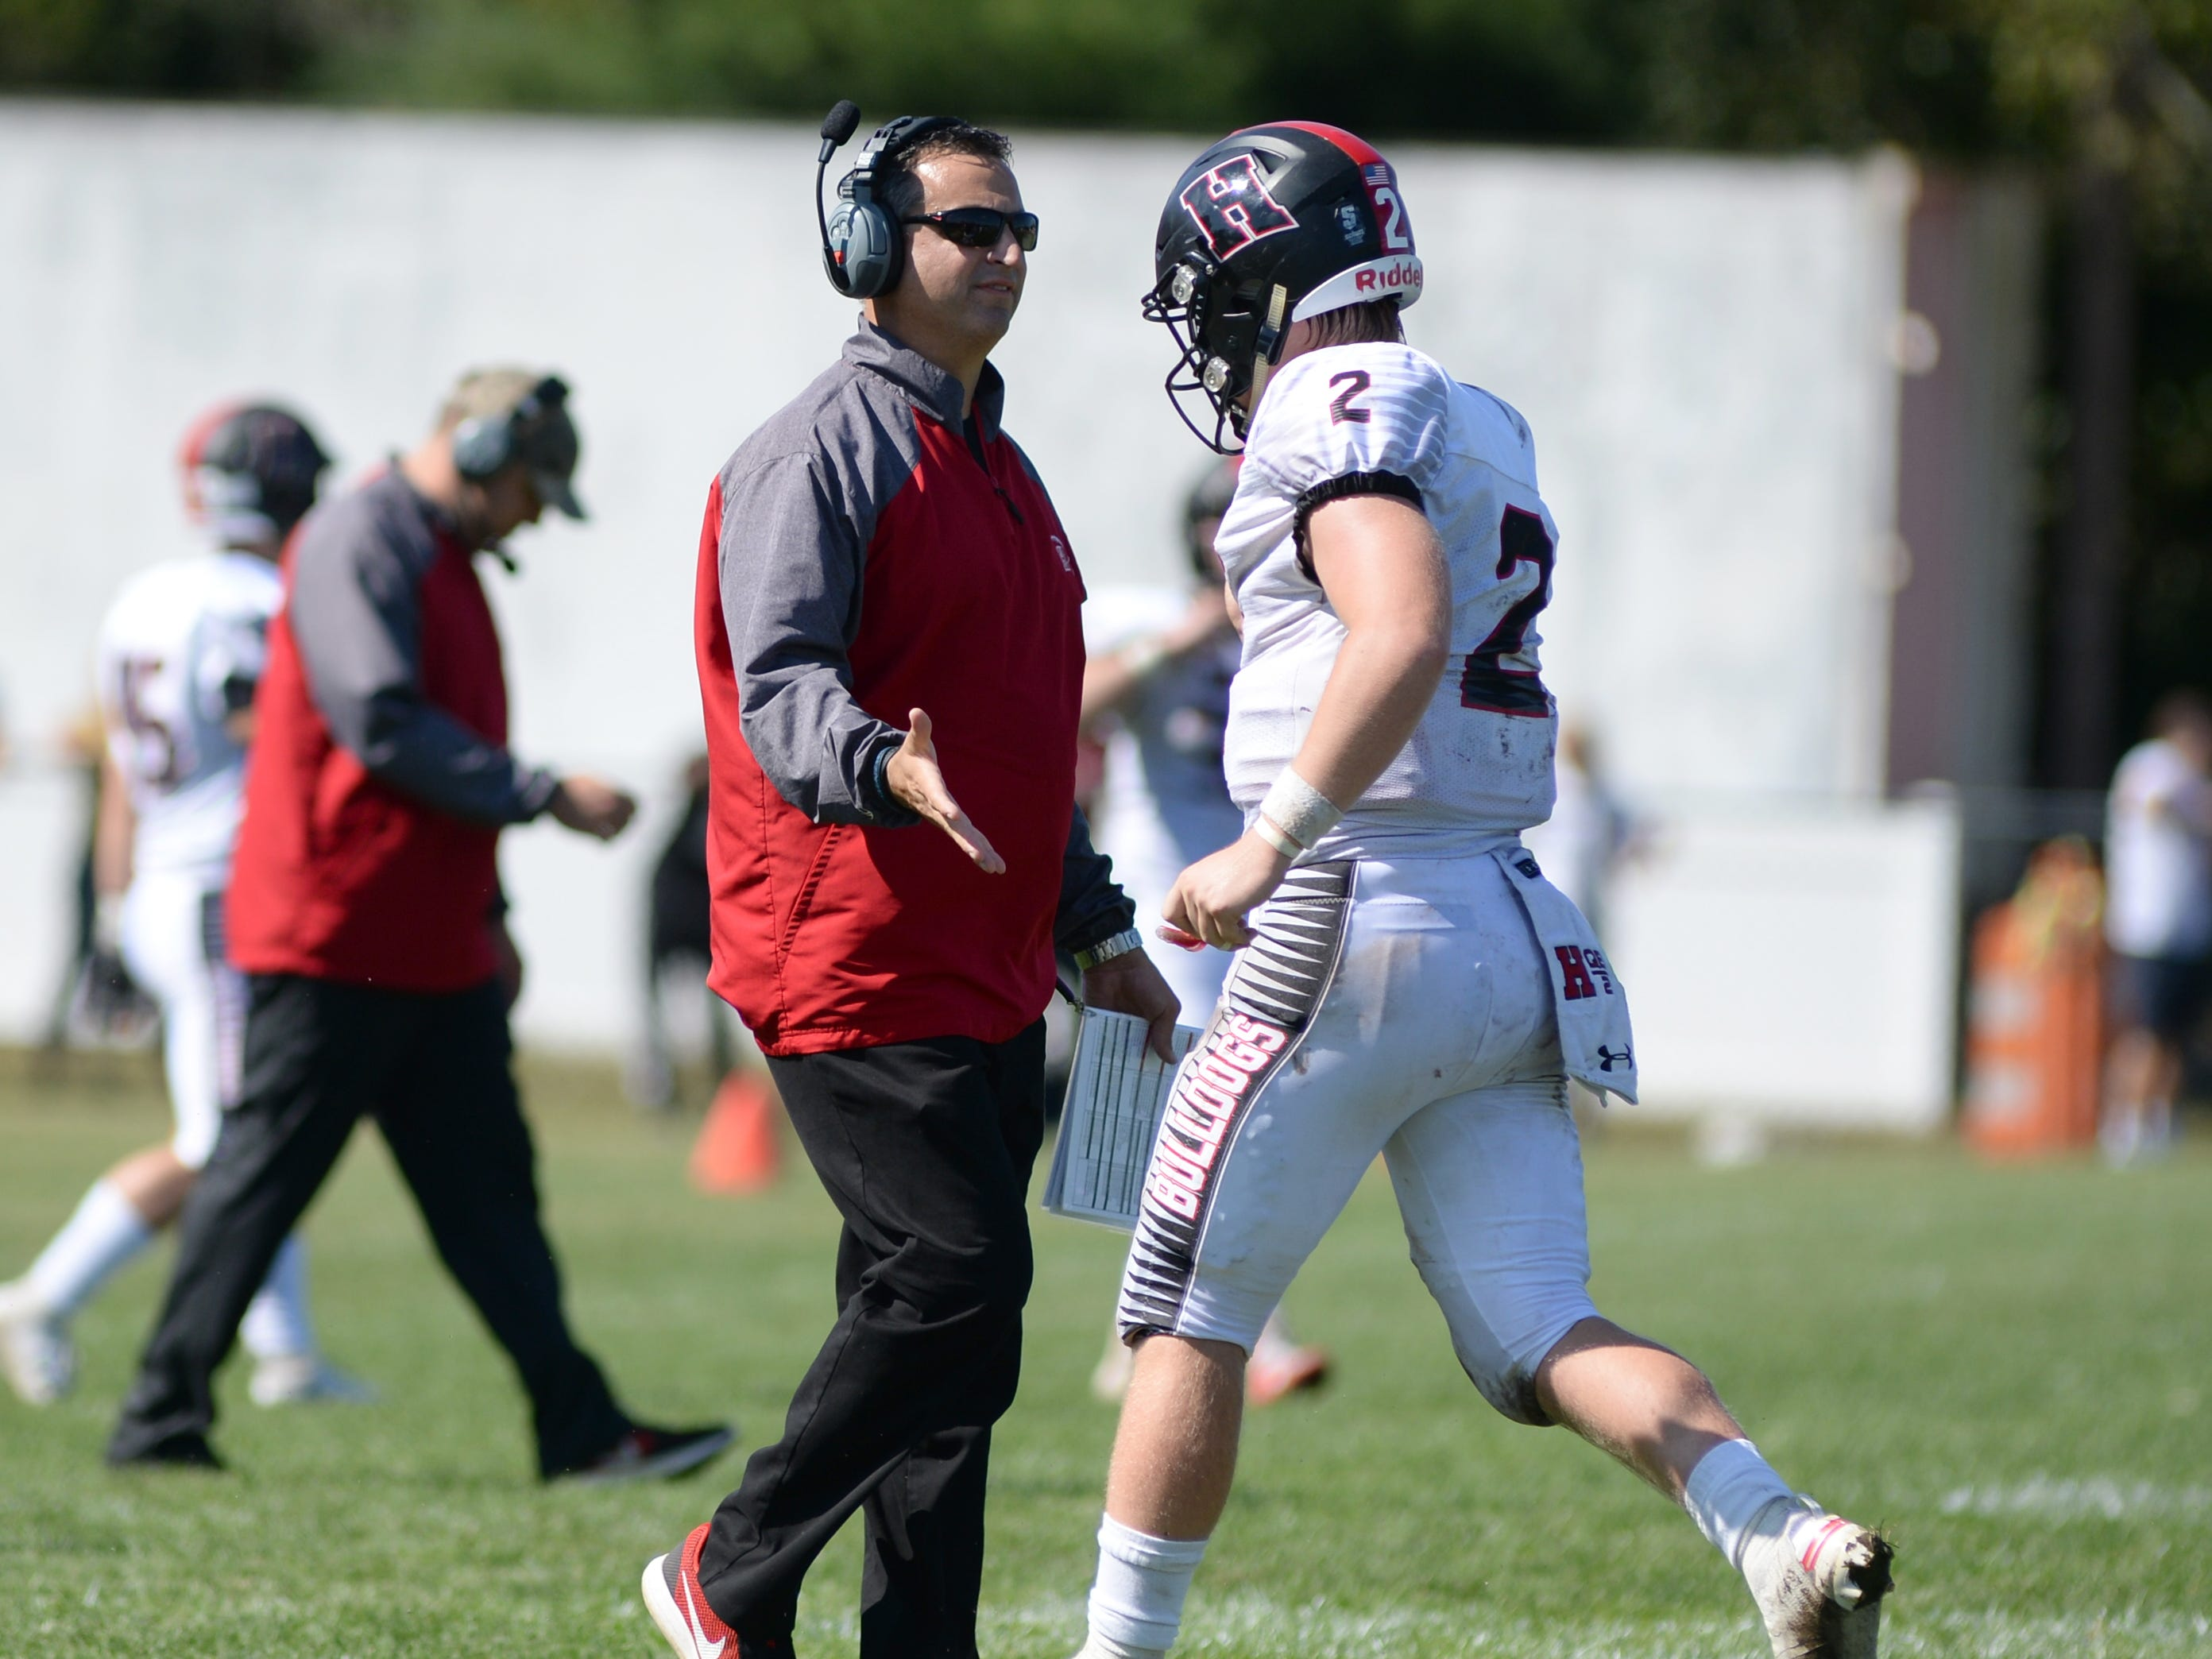 Haddonfield quarter back Jay Foley high fives coach Frank DeLano after throwing a touchdown pass during Saturday's game against St. Joseph, Sept. 29, 2018.